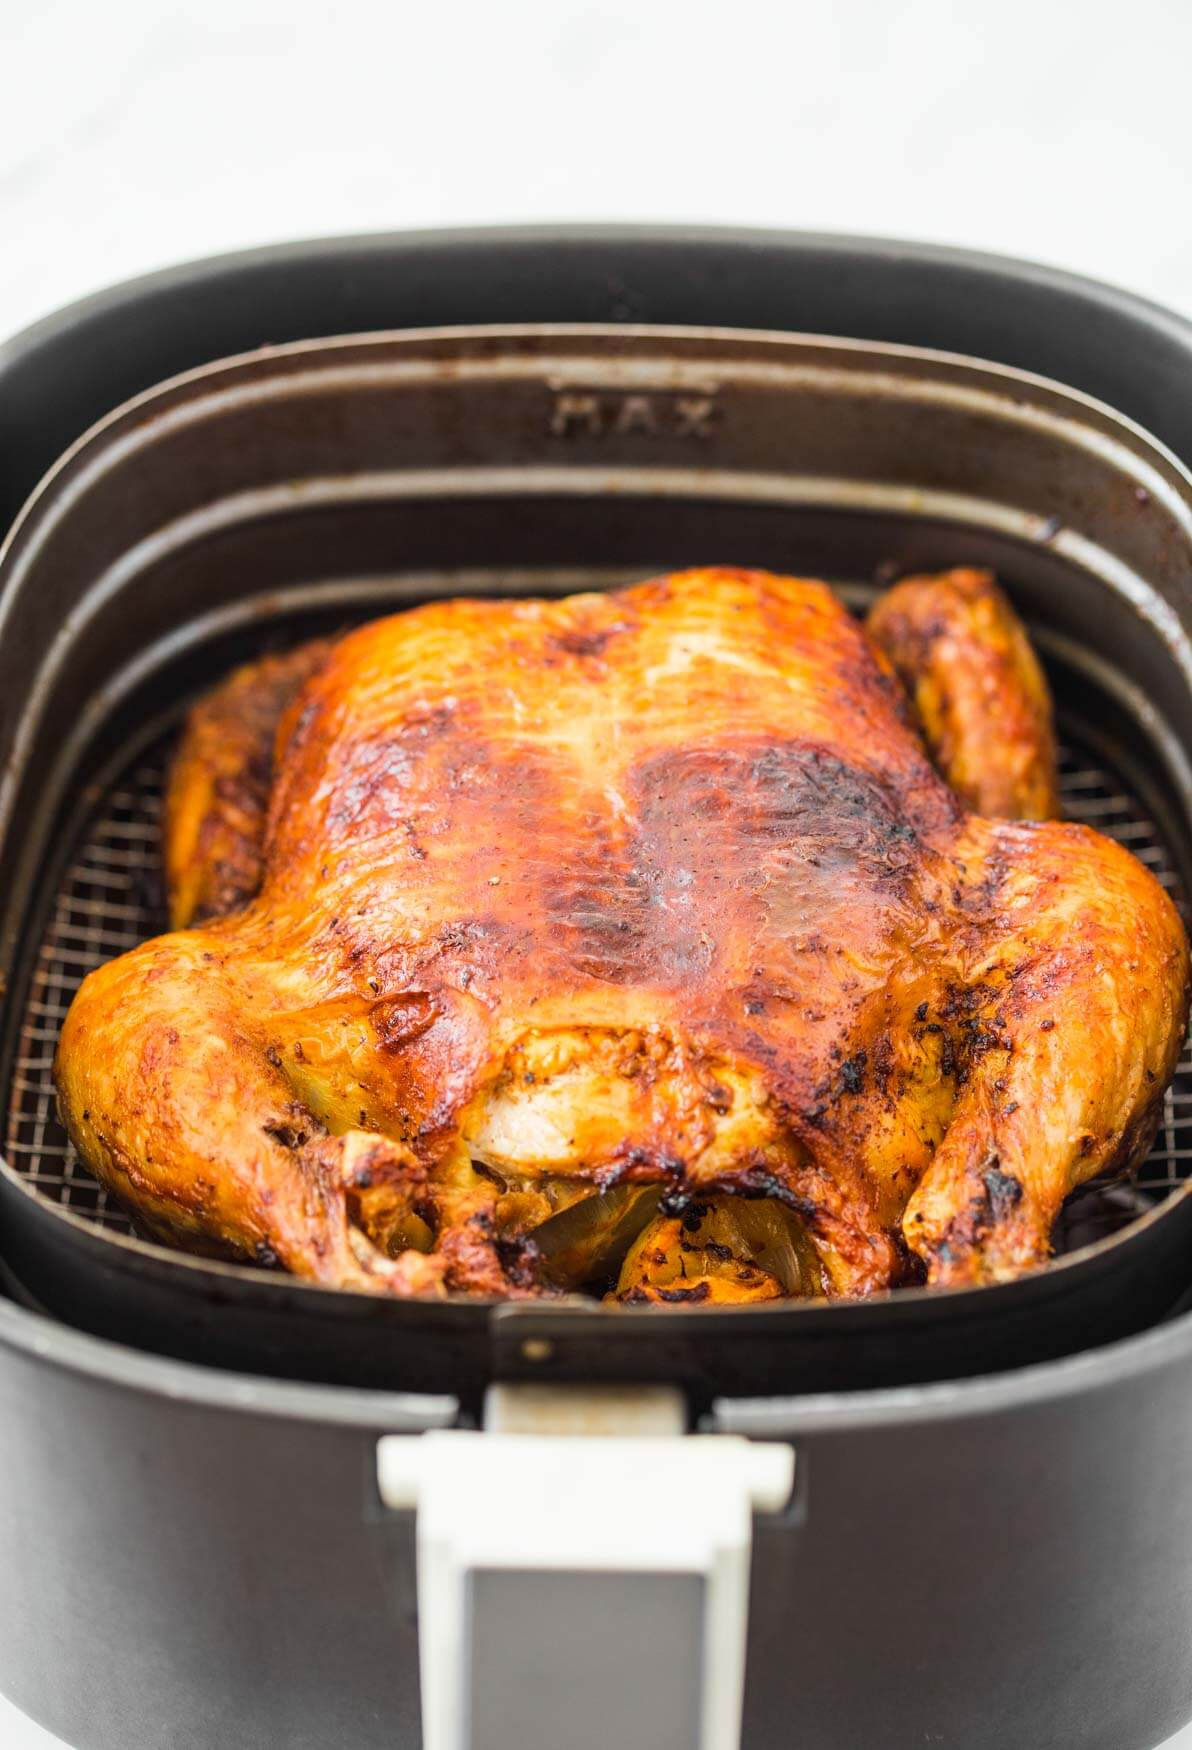 Roasted whole chicken in Air Fryer basket